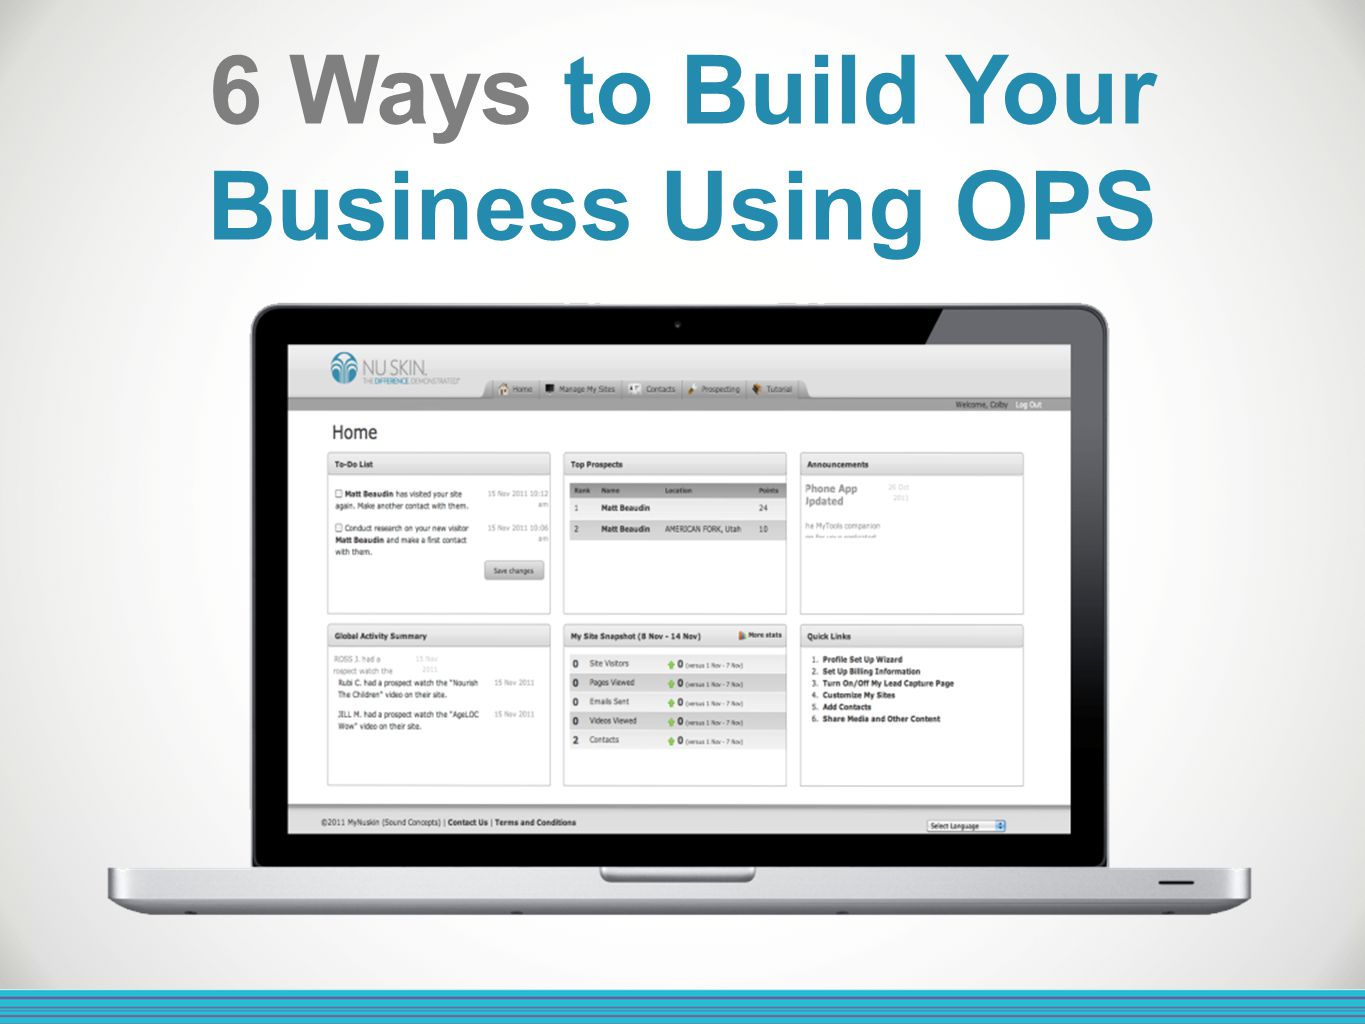 6 Ways to Build Your Business Using OPS